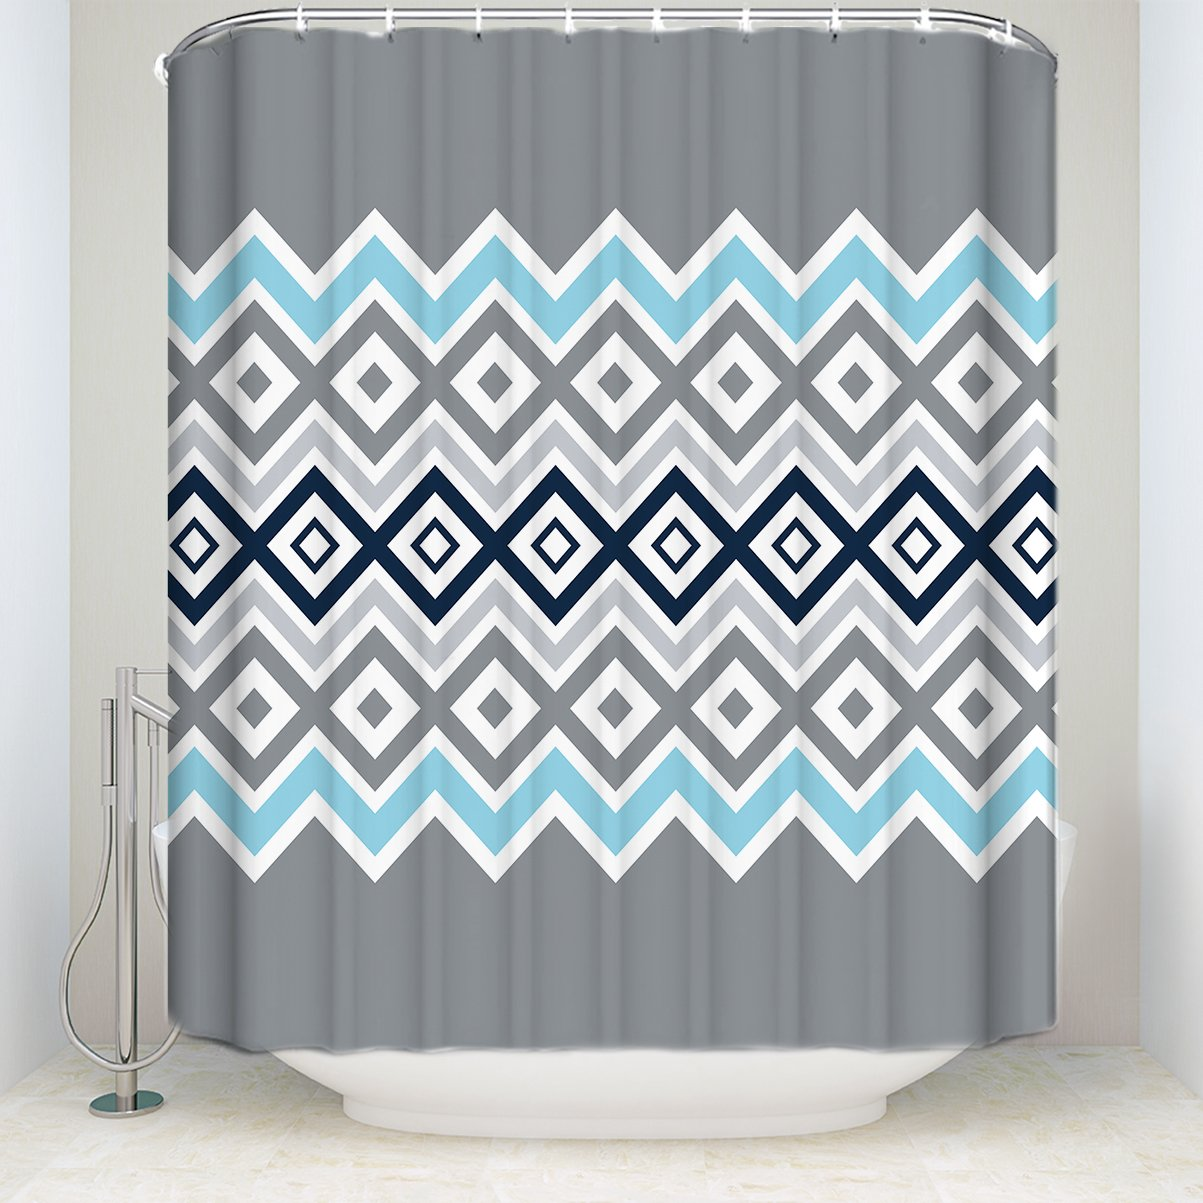 EZON CH Shower Curtains Wave Stripe Geometric Picture Dark Blue Grey Light Print Customize Waterproof Polyester Fabric Home Hotel Apartment Bathroom